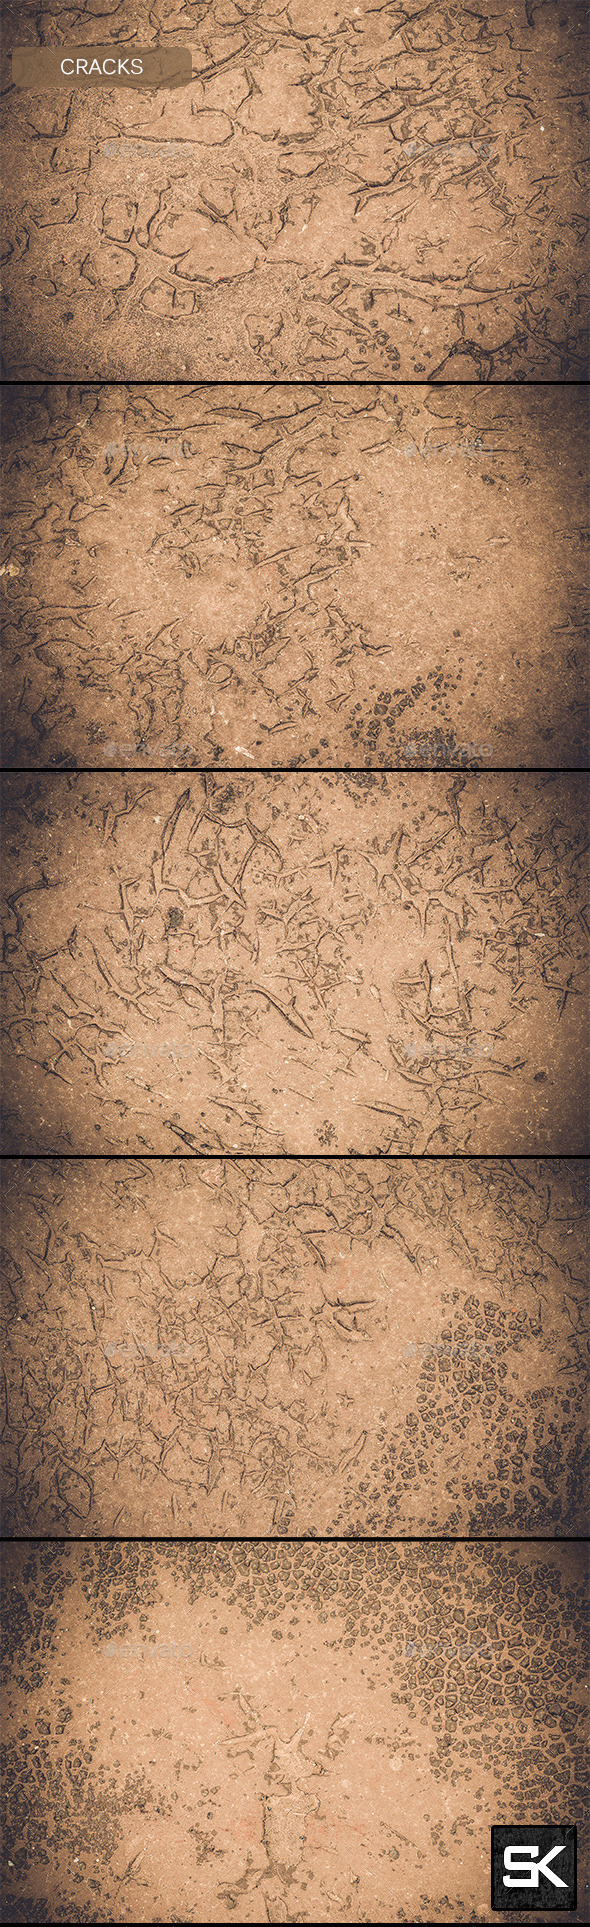 GraphicRiver Cracks.2 11494758